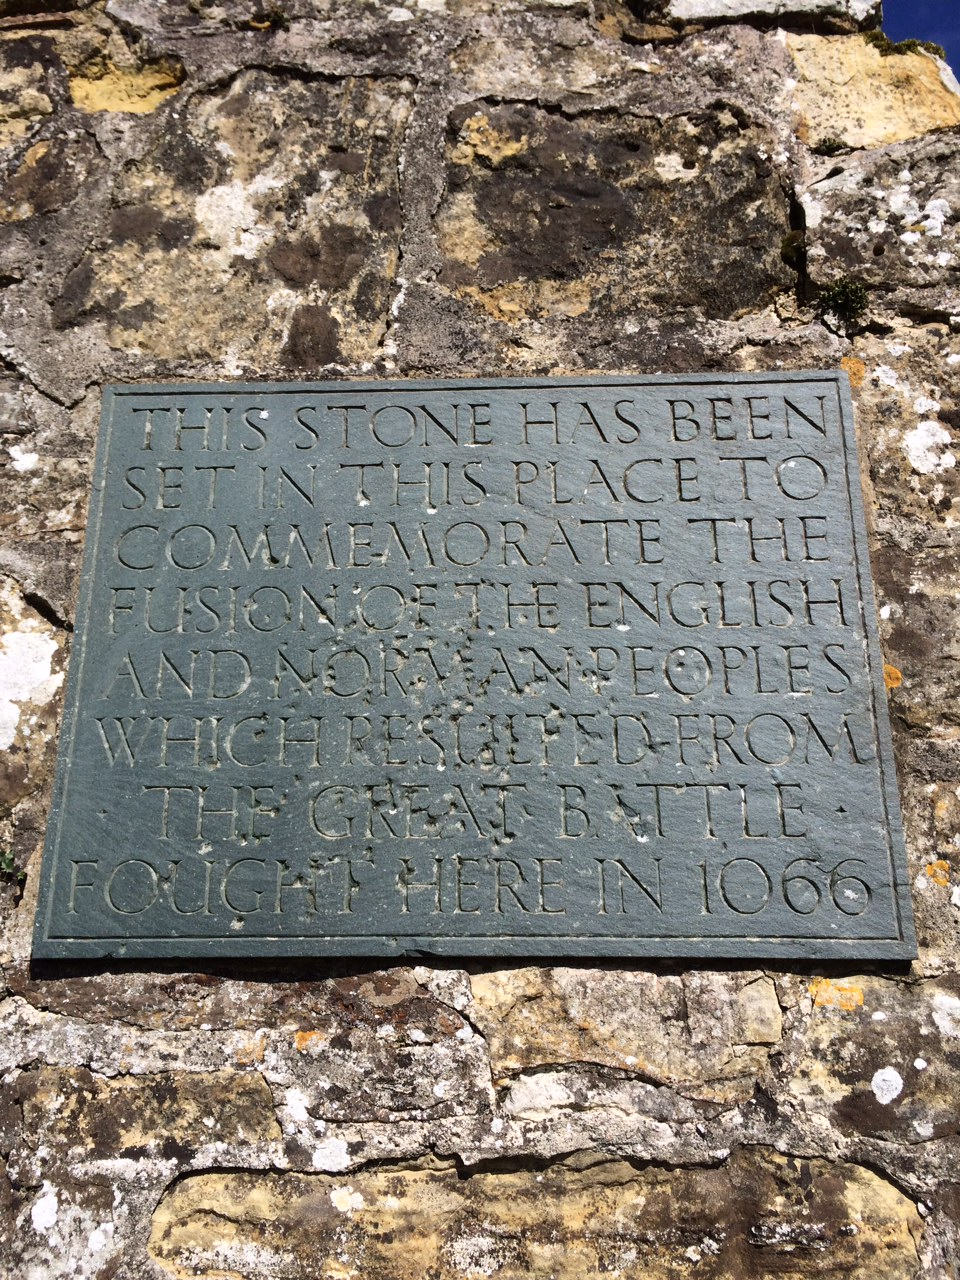 this stone has been set in this place to commemorate the fusion of the english and norman people which resulted from the great battle fought here in 1066